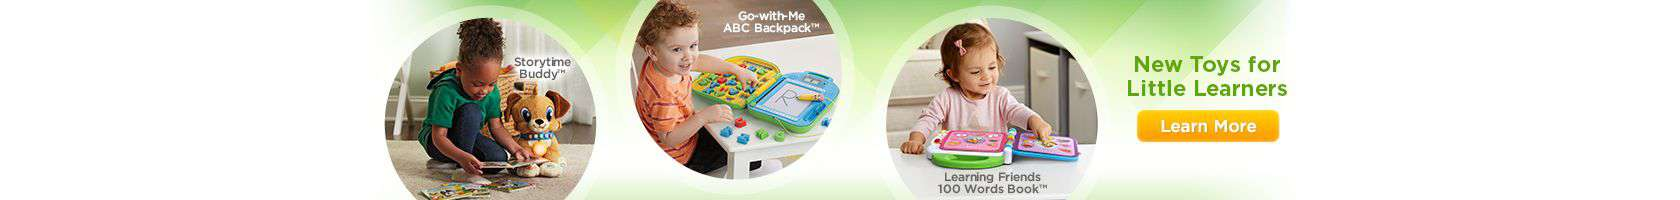 LeapFrog SG-New Toys for Little Learners-Banner